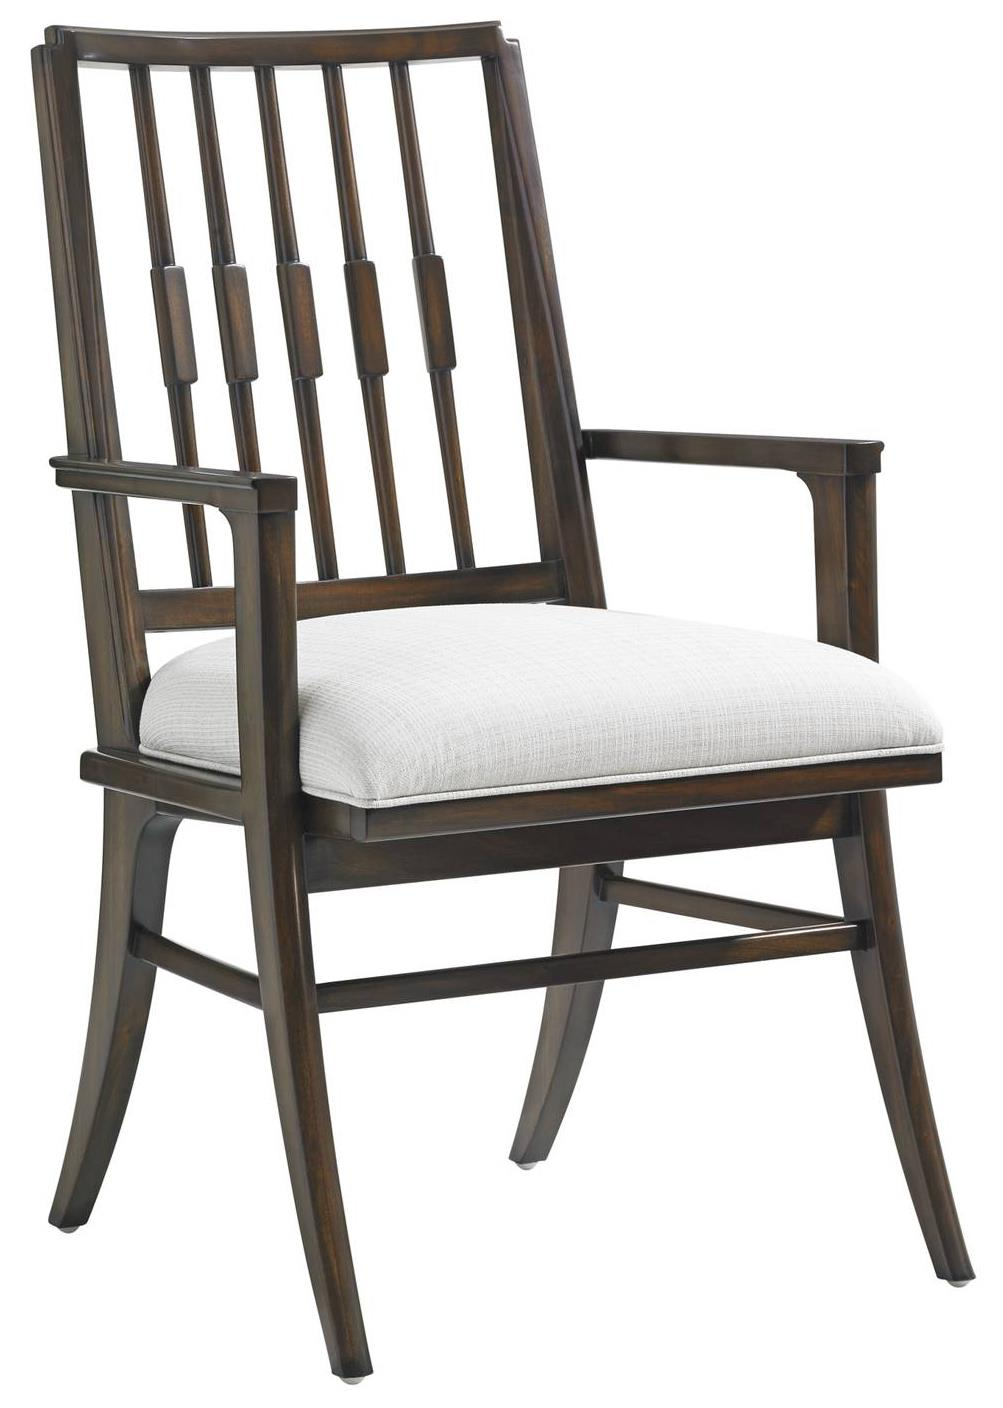 Stanley Furniture Crestaire Savoy Arm Chair - Item Number: 436-11-70